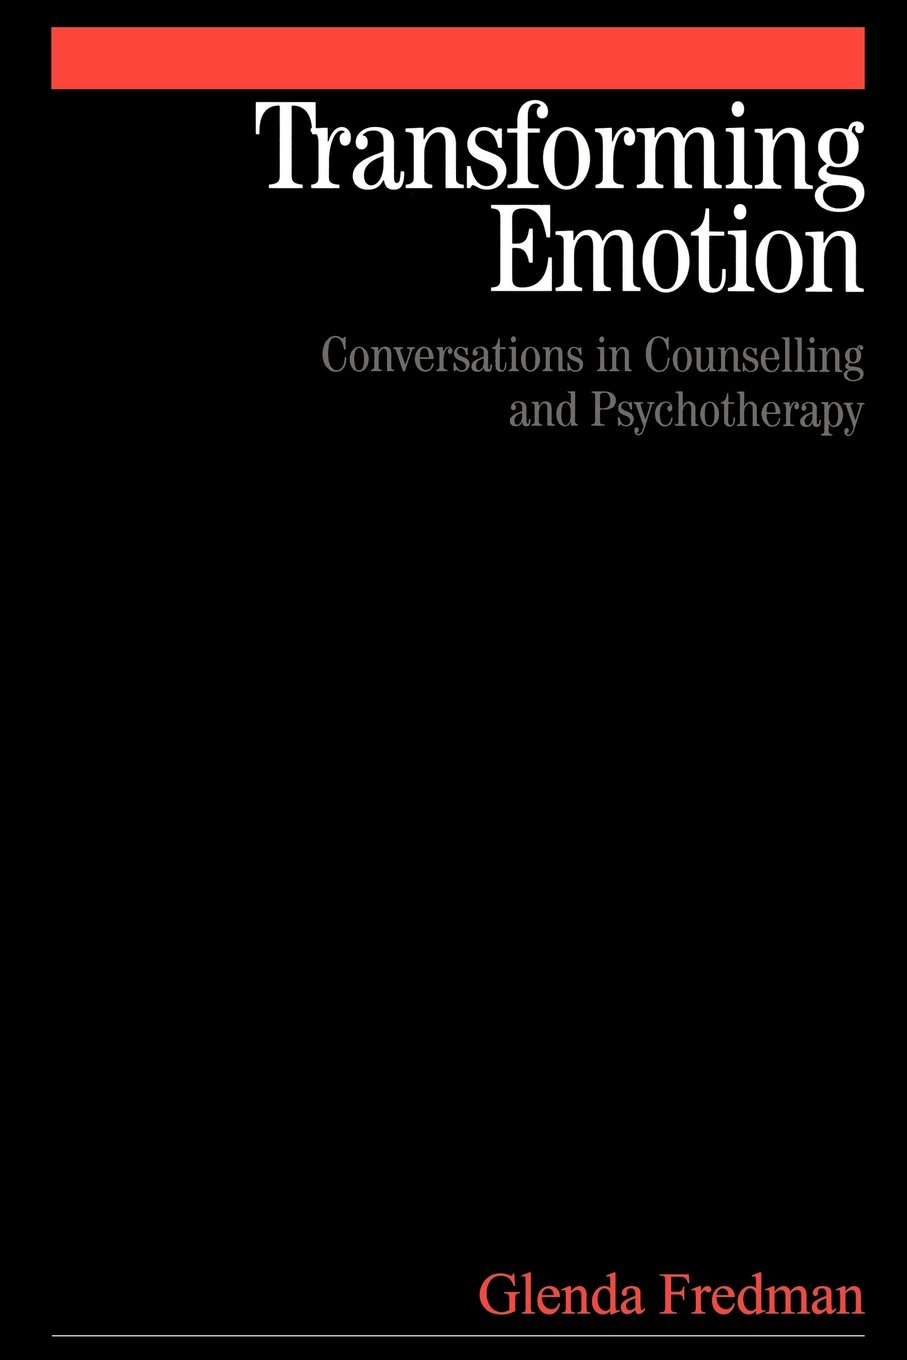 Transforming Emotion: Conversations in Counselling and Psychotherapy ebook